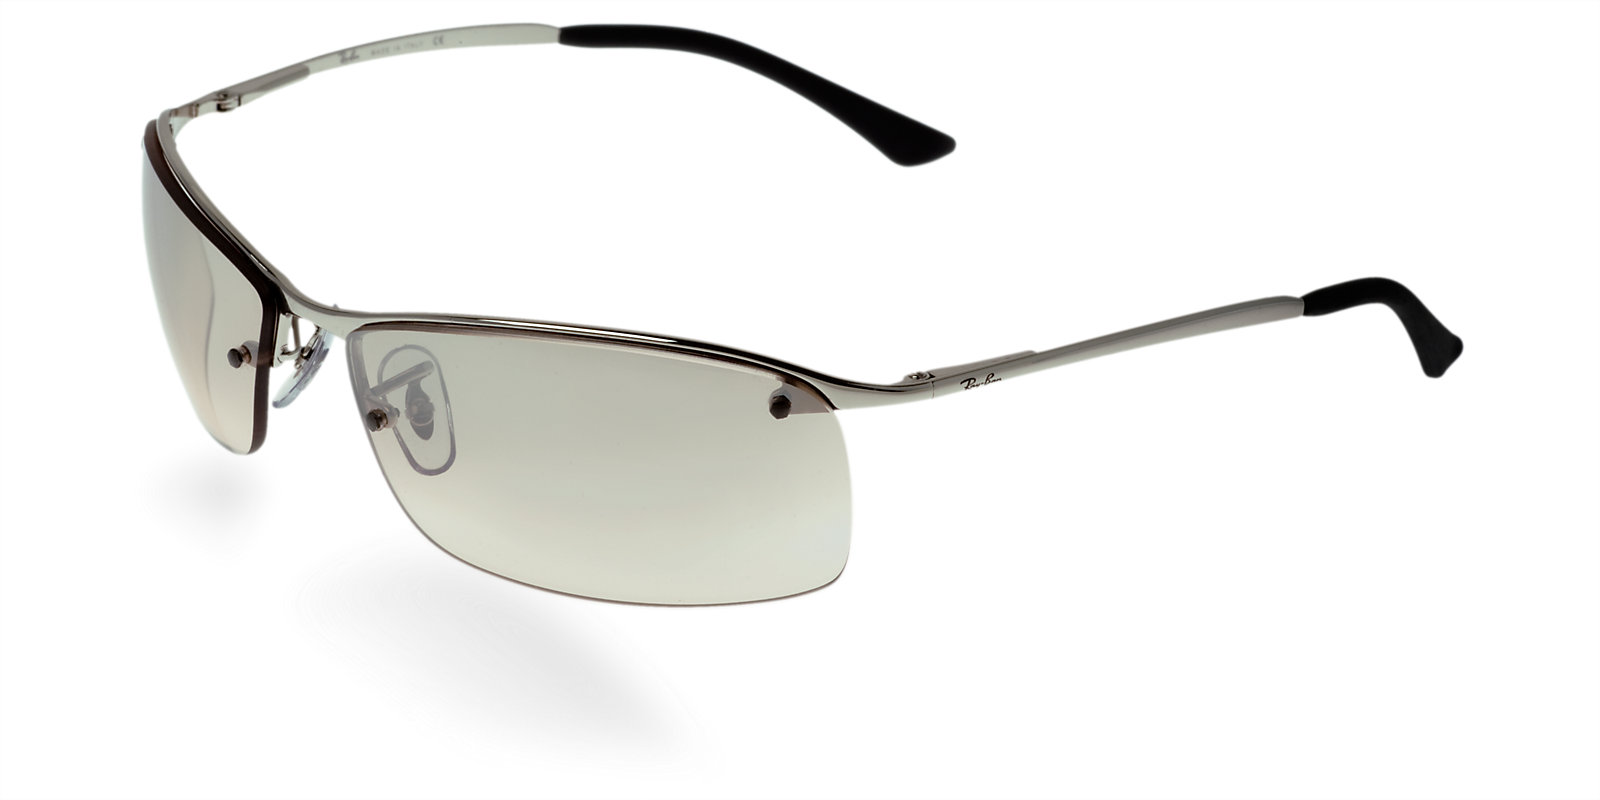 Rayban Sunglasses For Men  exclusive ray ban luxury sunglasses and goggles for men